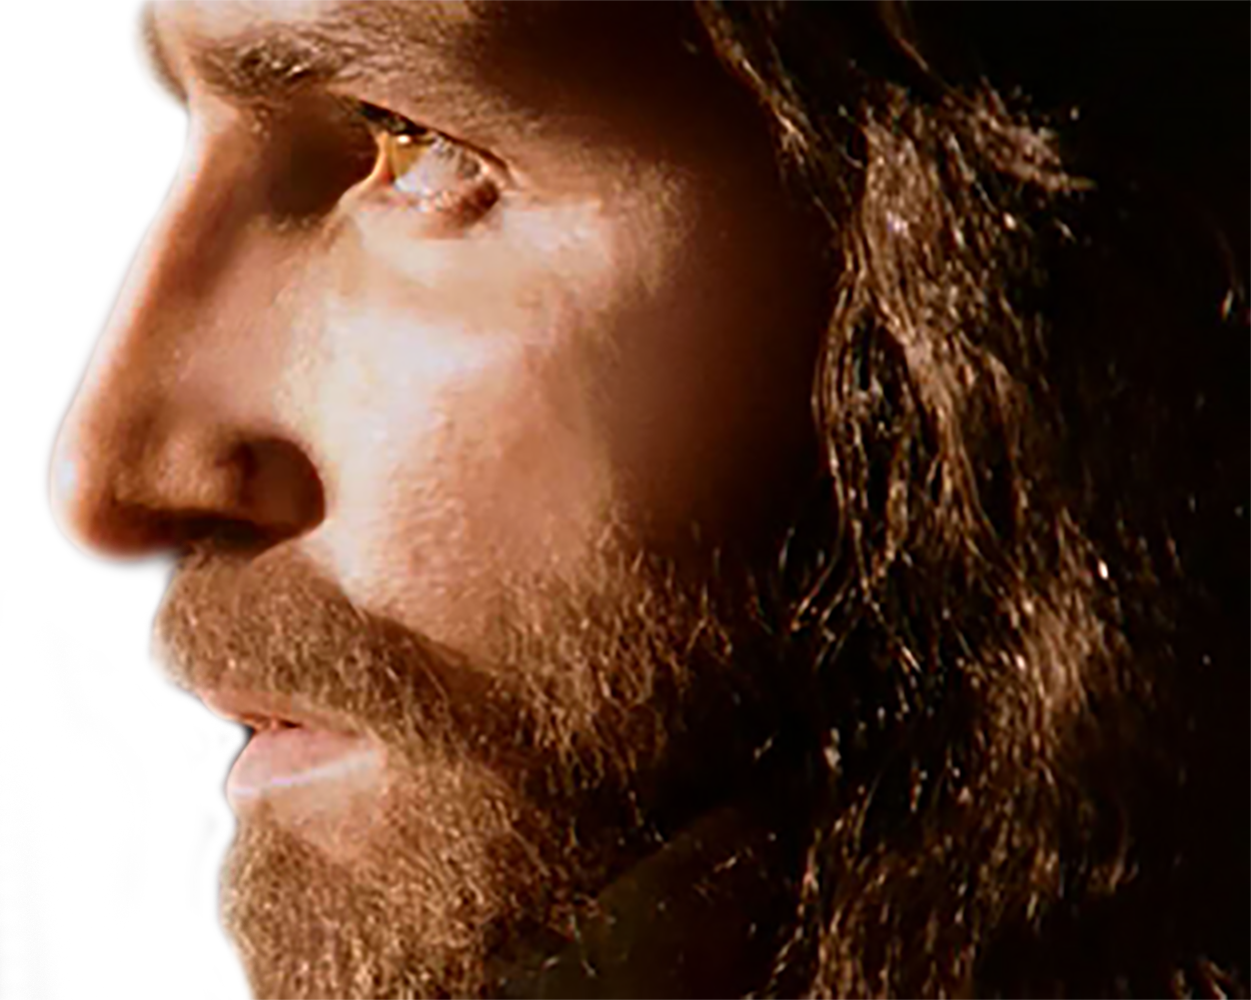 Jesus face png. A love story for